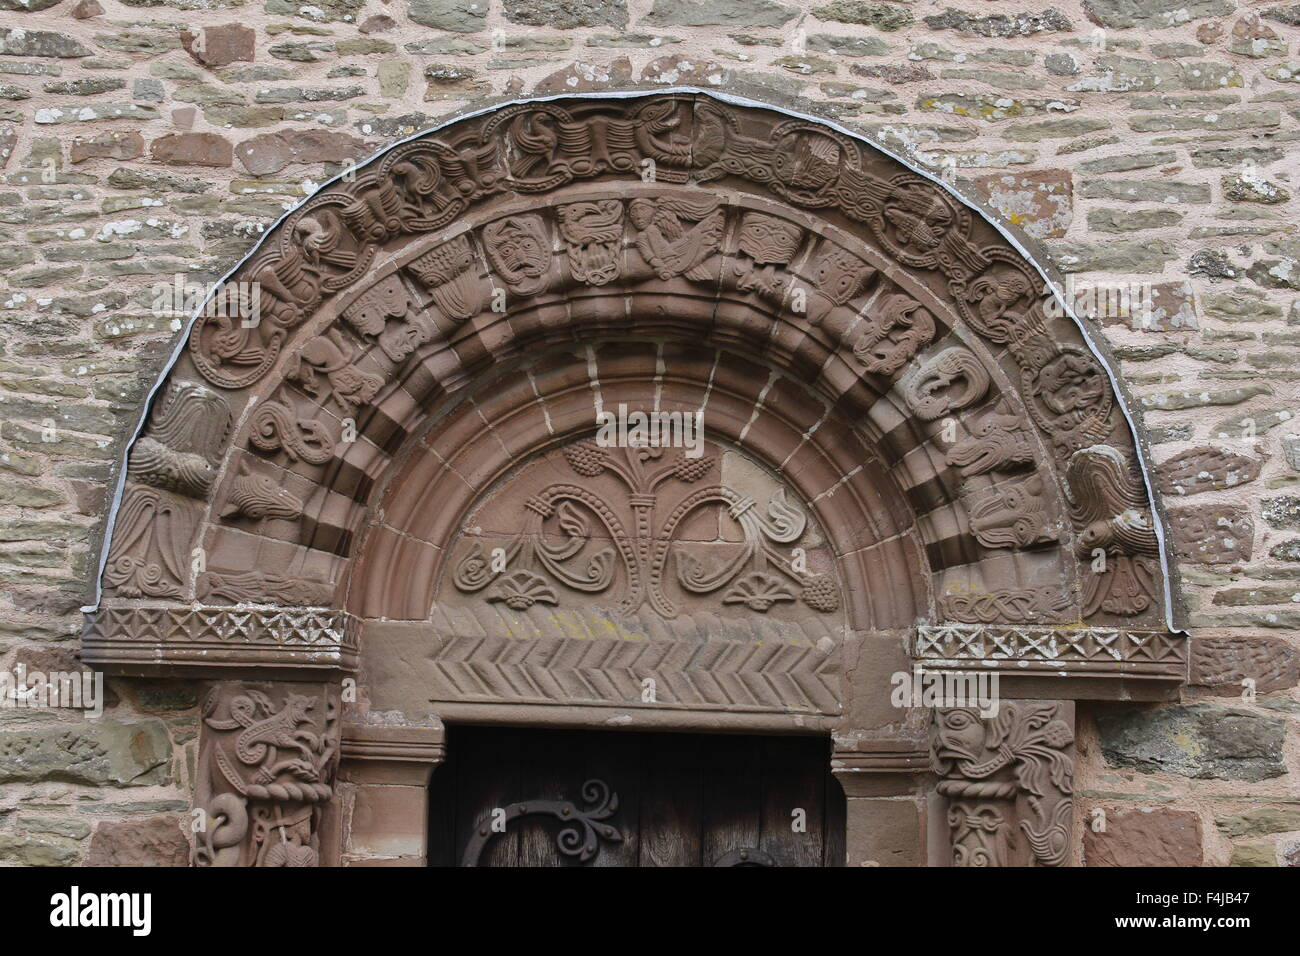 The South Door Tympanum and Arches, Kilpeck Church, Herefordshire, England - Stock Image